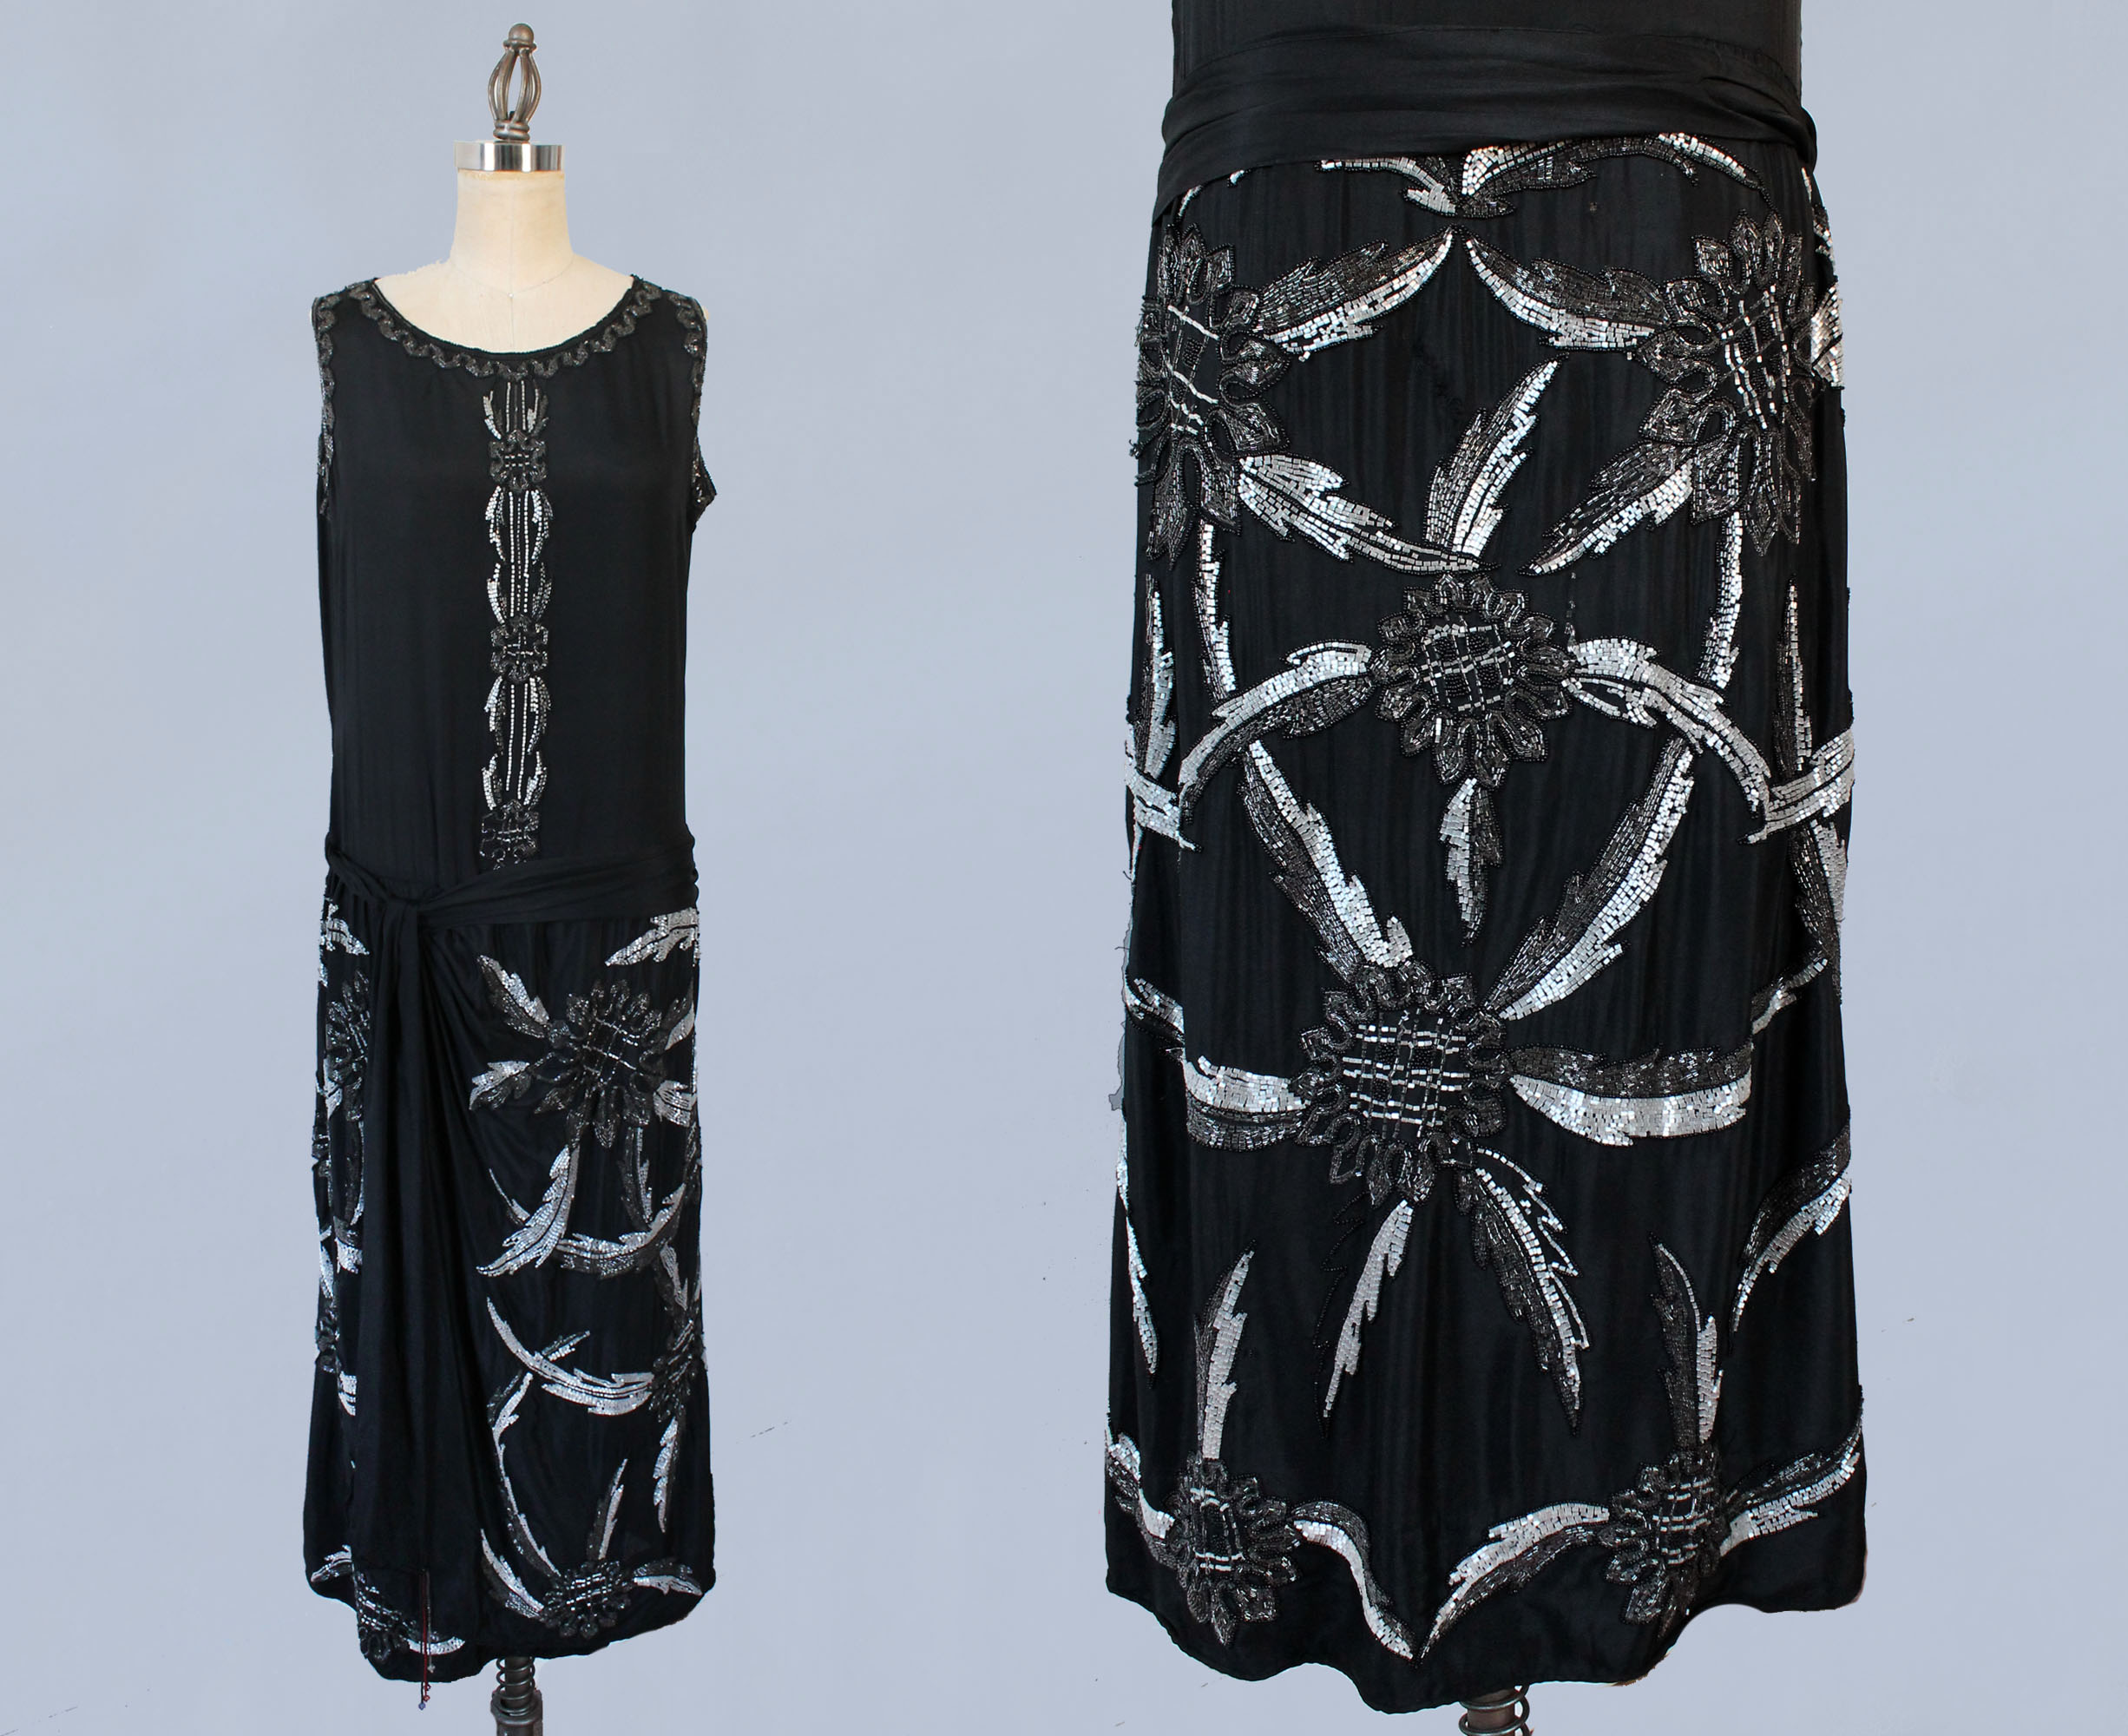 Black silk dress with abstract beaded designs. 1920s.